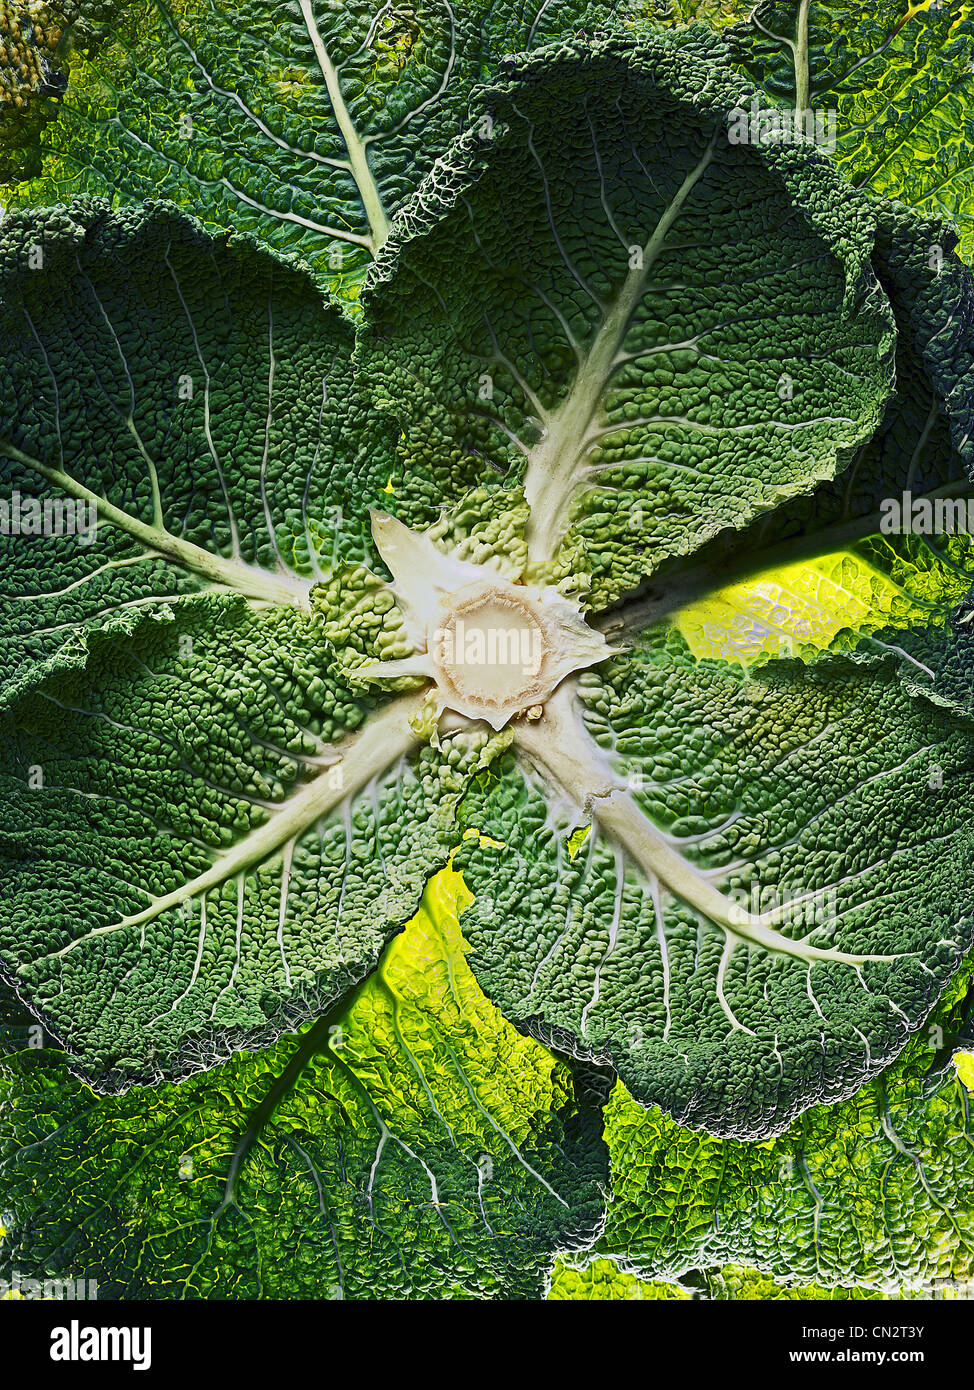 Savoy cabbage leaves - Stock Image